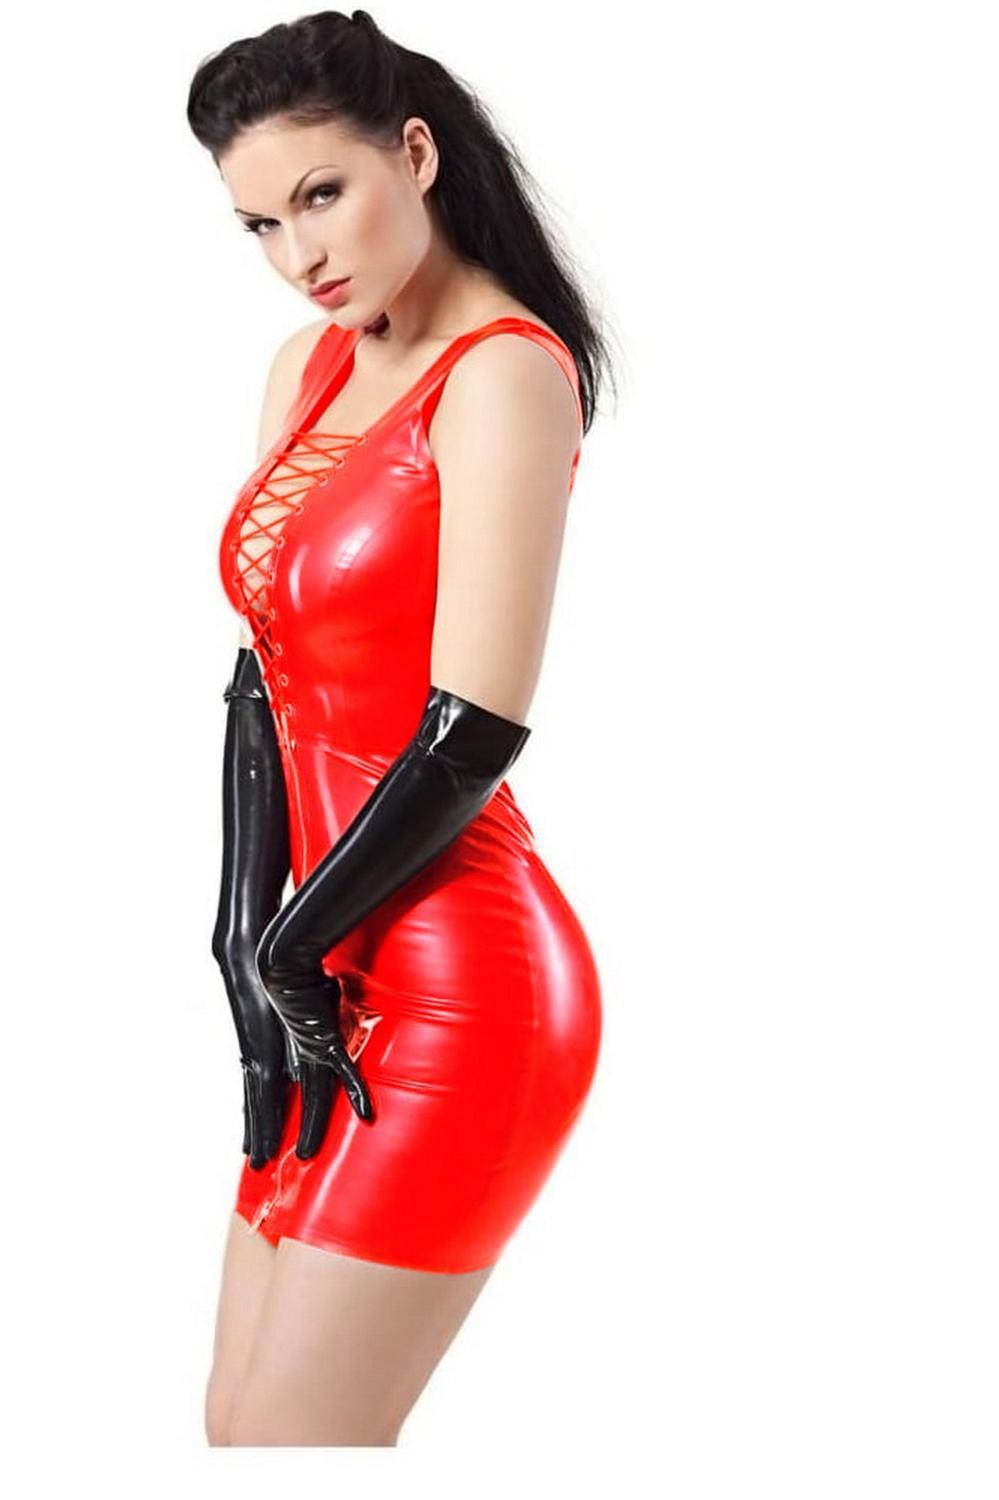 Plus <font><b>5XL</b></font> 6XL Women's <font><b>Sexy</b></font> PU Mini <font><b>Dress</b></font> Bondage Clubwear Party <font><b>club</b></font> 2019 Cosplay Sleeveless Bodycon PVC Sheath <font><b>Dress</b></font> Vestidos image